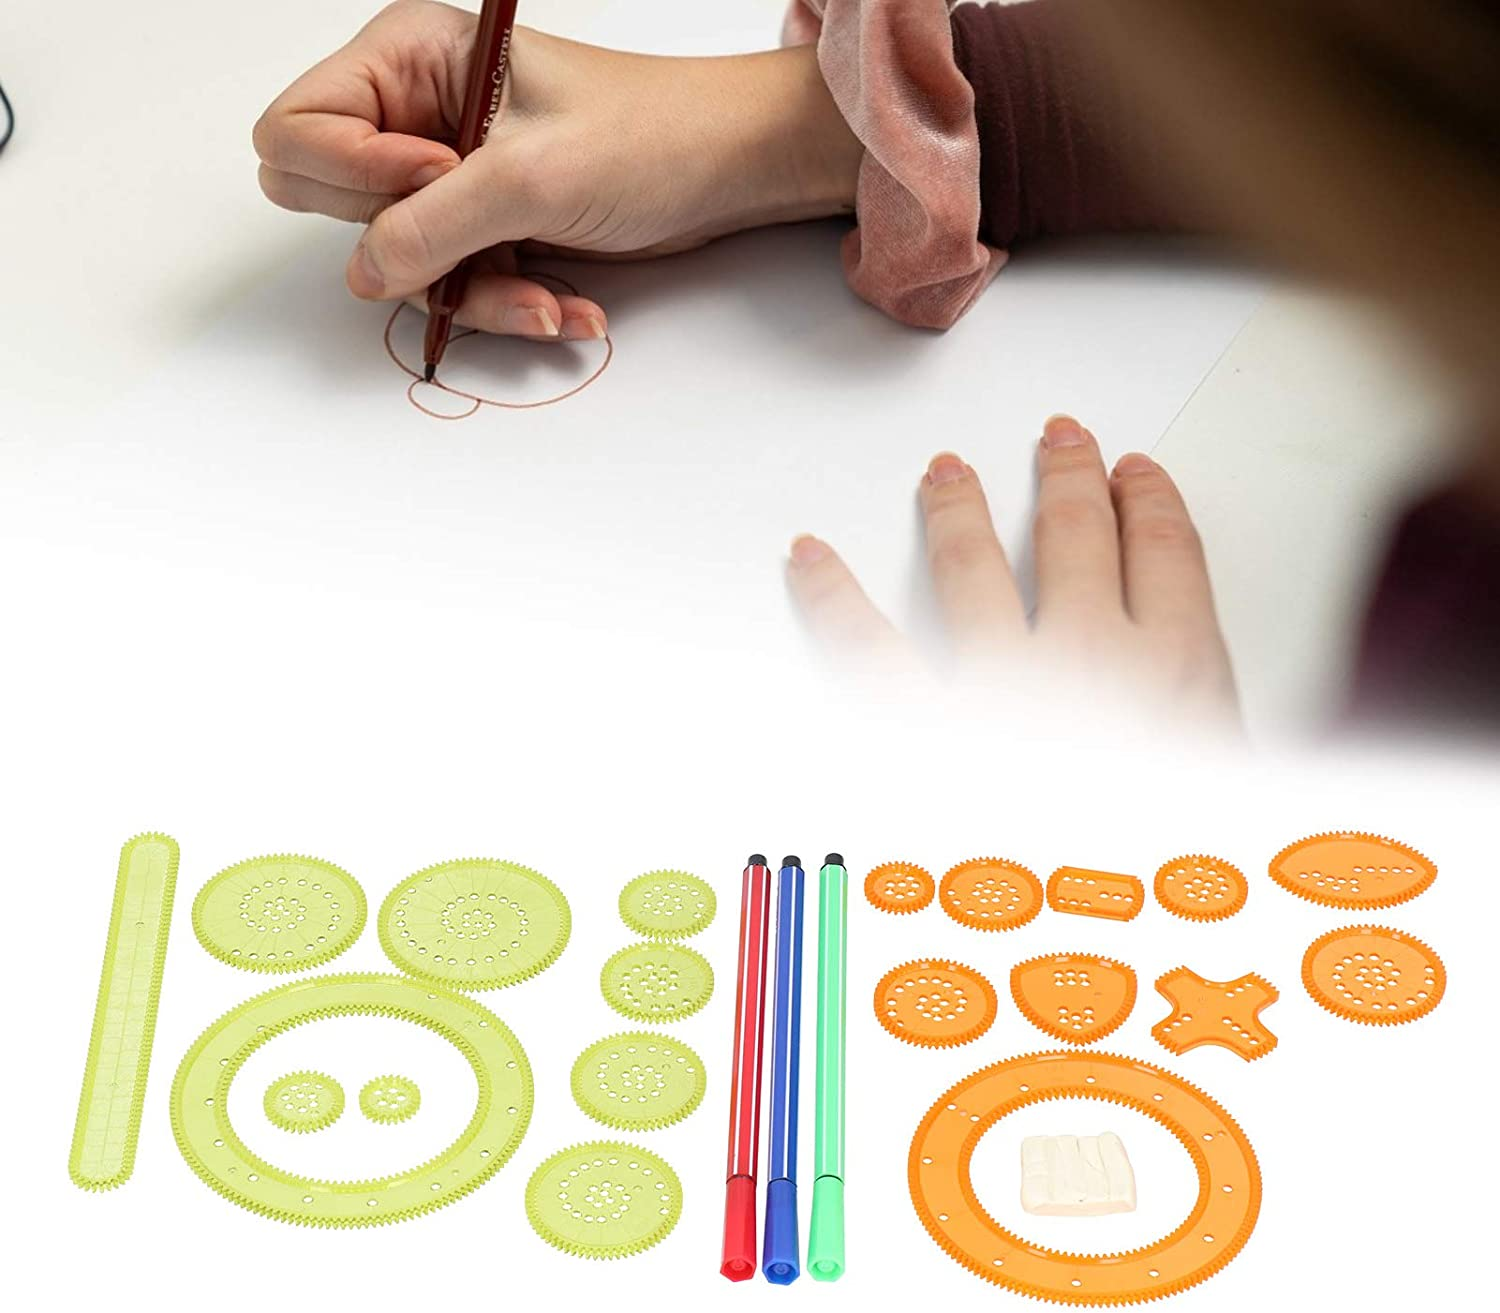 Painting Max 44% OFF Accessory Interlocking Gears Toy for Drawing Children 70% OFF Outlet